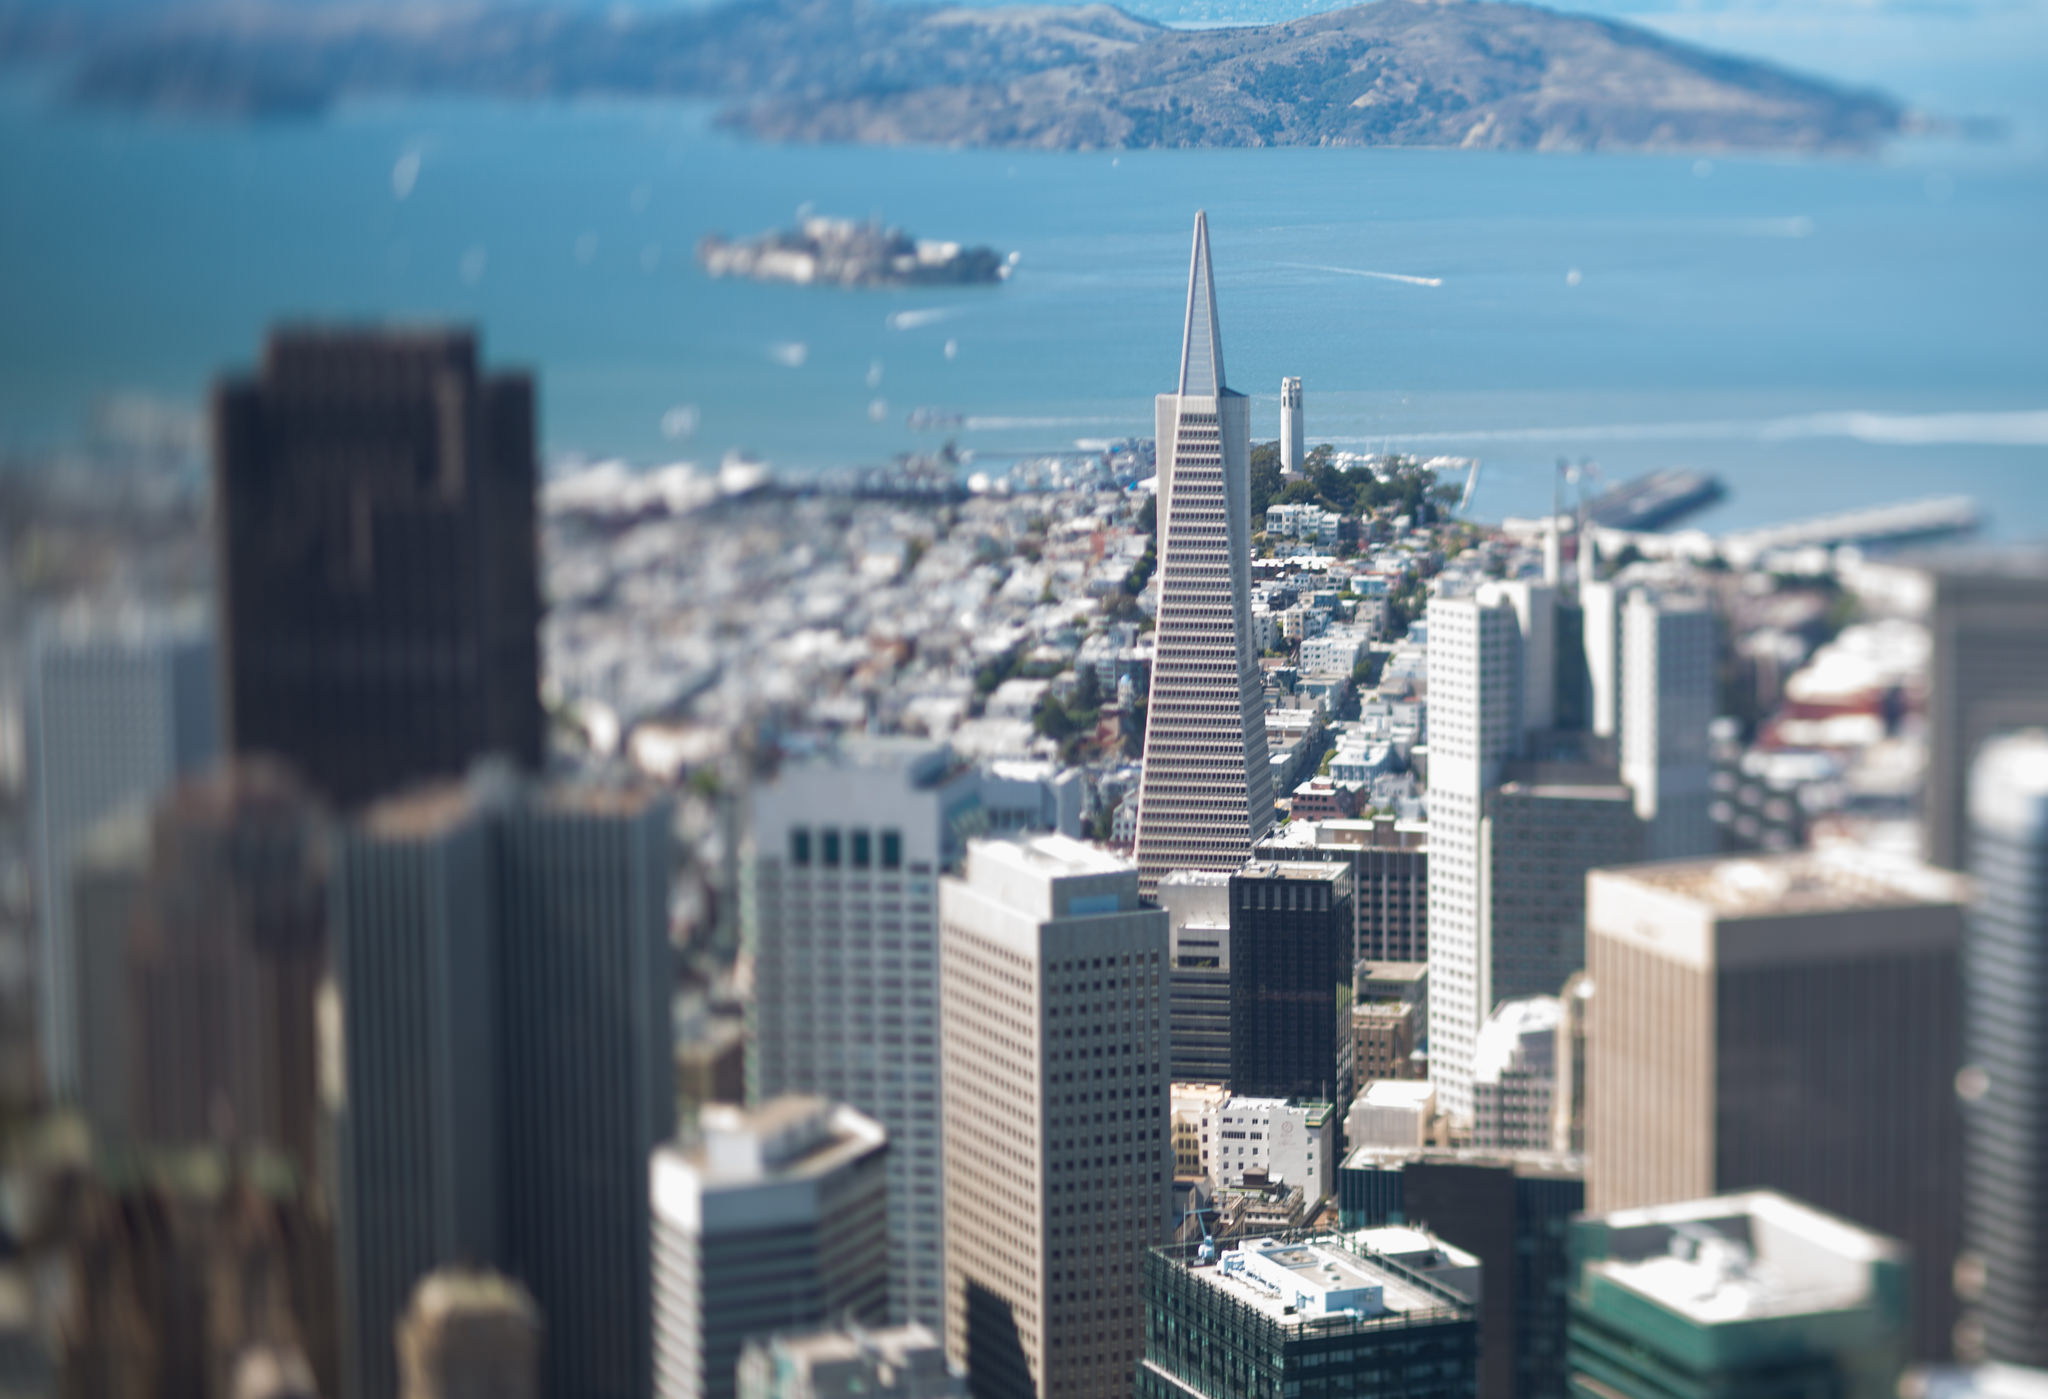 TransAmerica/Coit Tower in focus